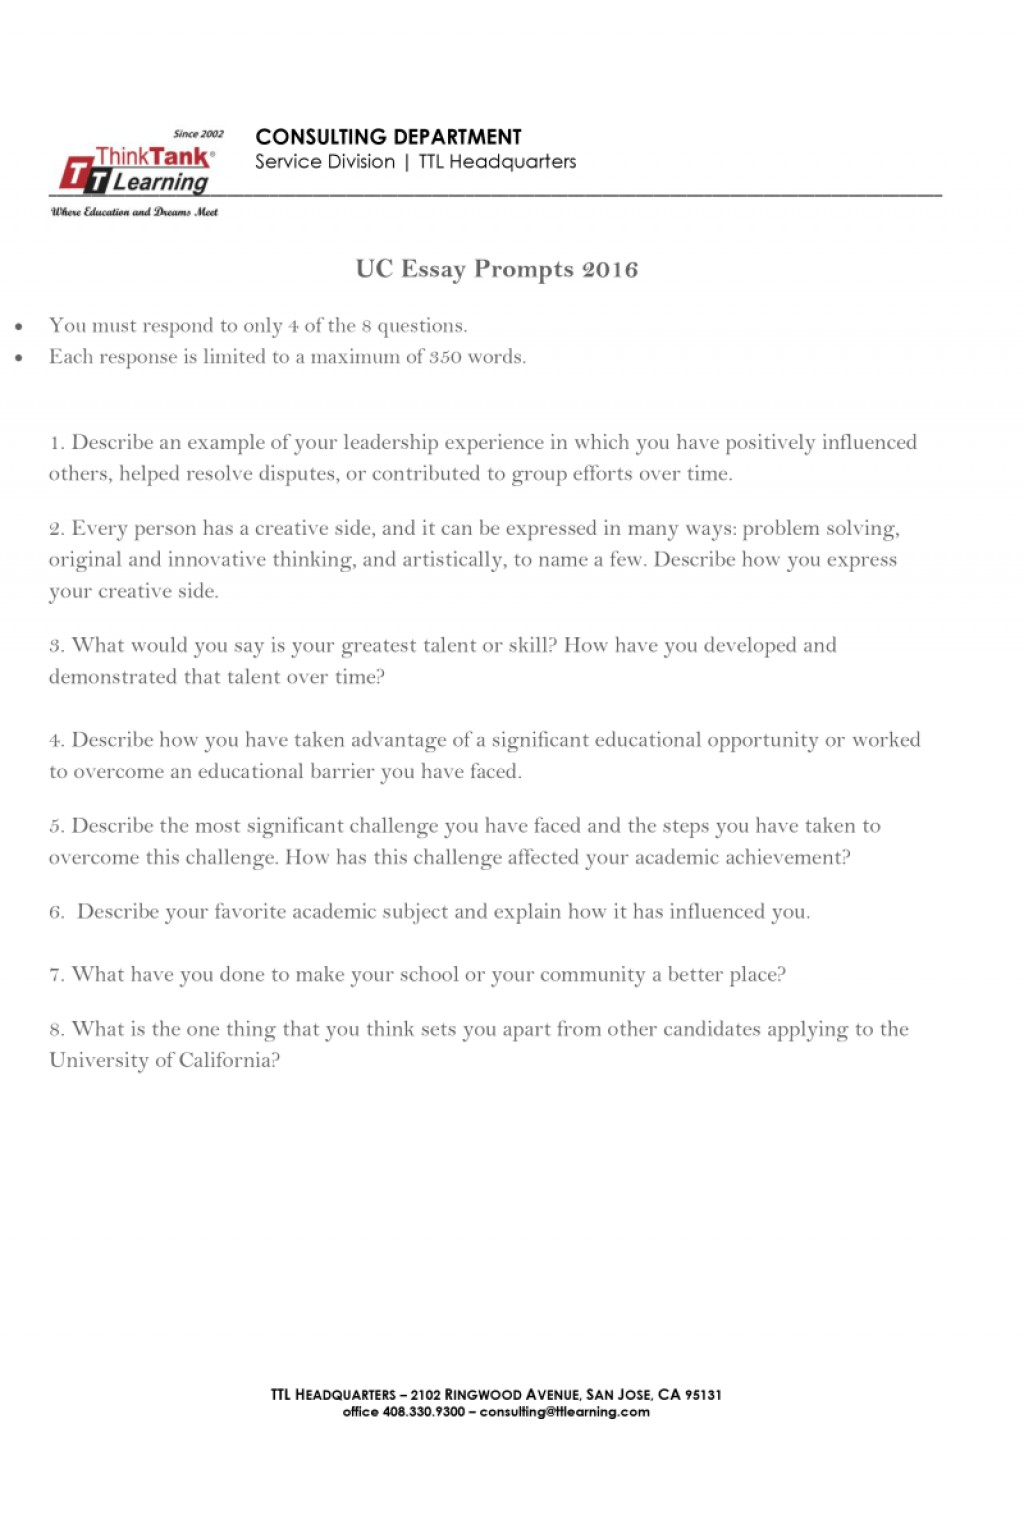 018 Apply Texas Essay Examples Example Prompts Poemsrom Co Uc College App 2 Application Berkeley Unusual C 2017 Topic A 2018 Large